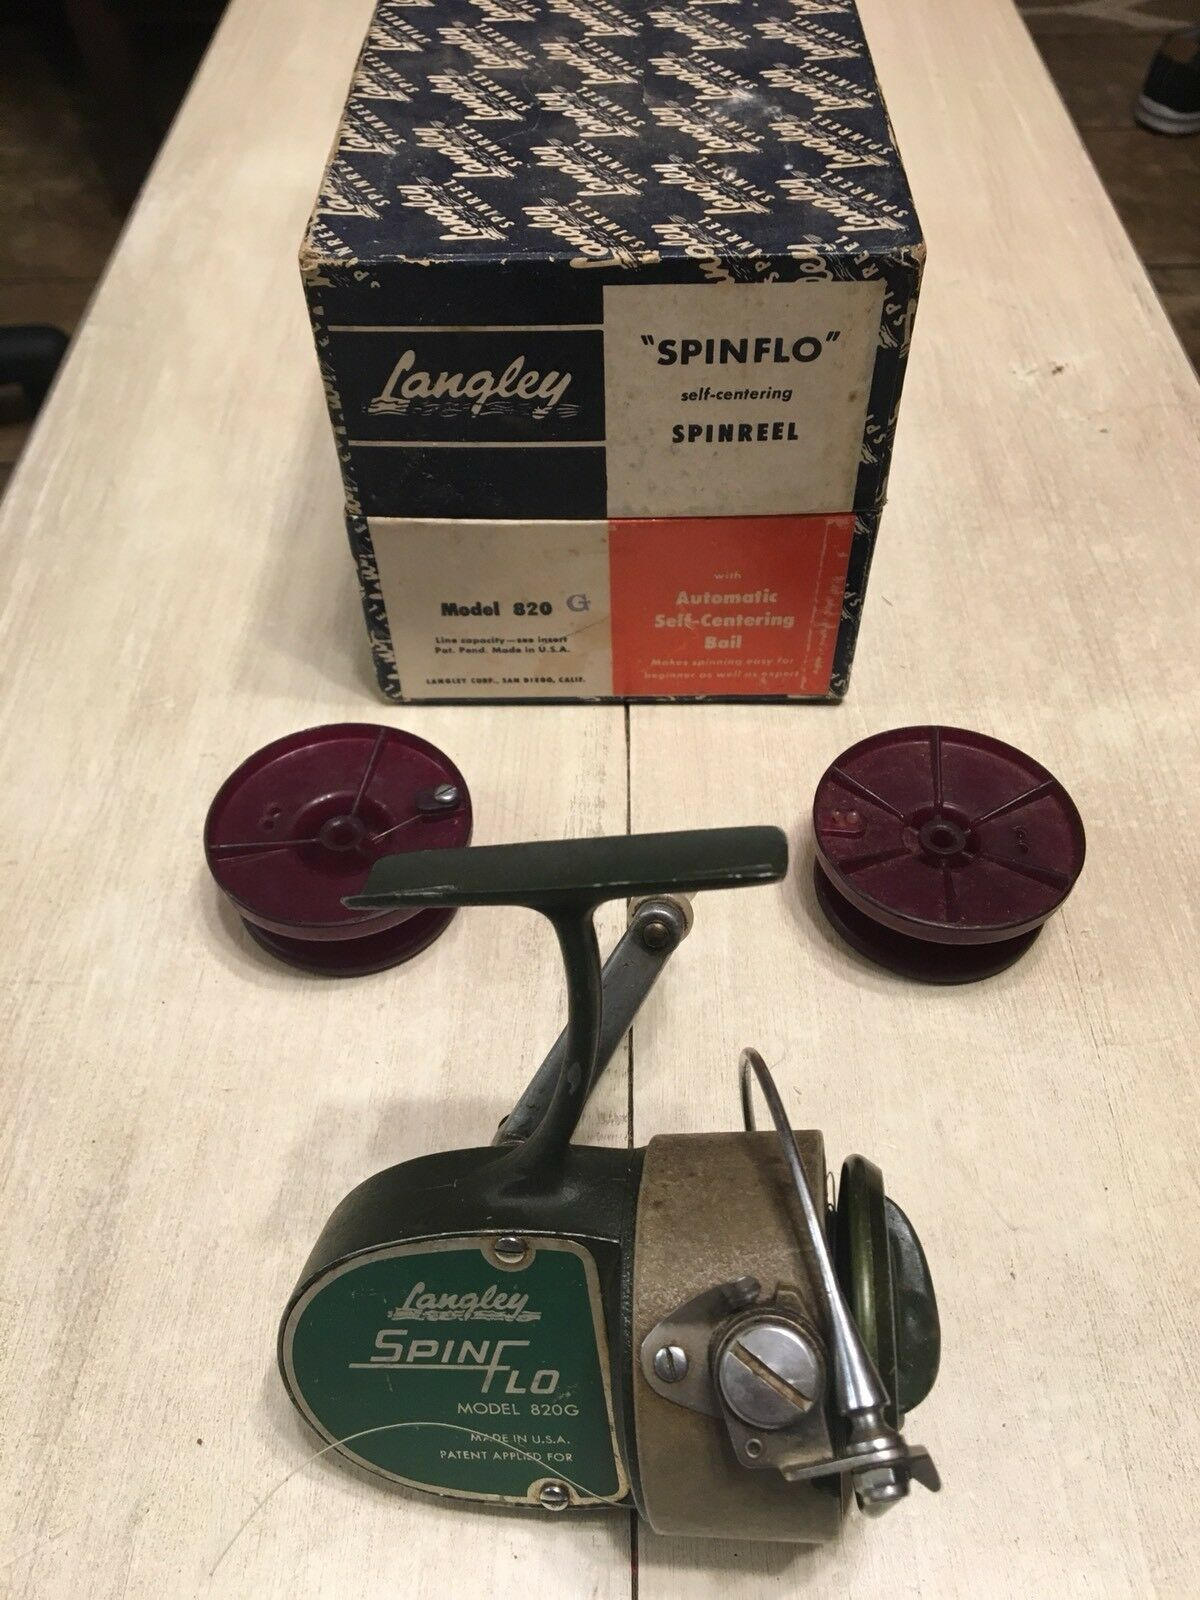 VINTAGE LANGLEY SPINFLO 820G Spinning Reel Spare Spools and Original Box Fishing